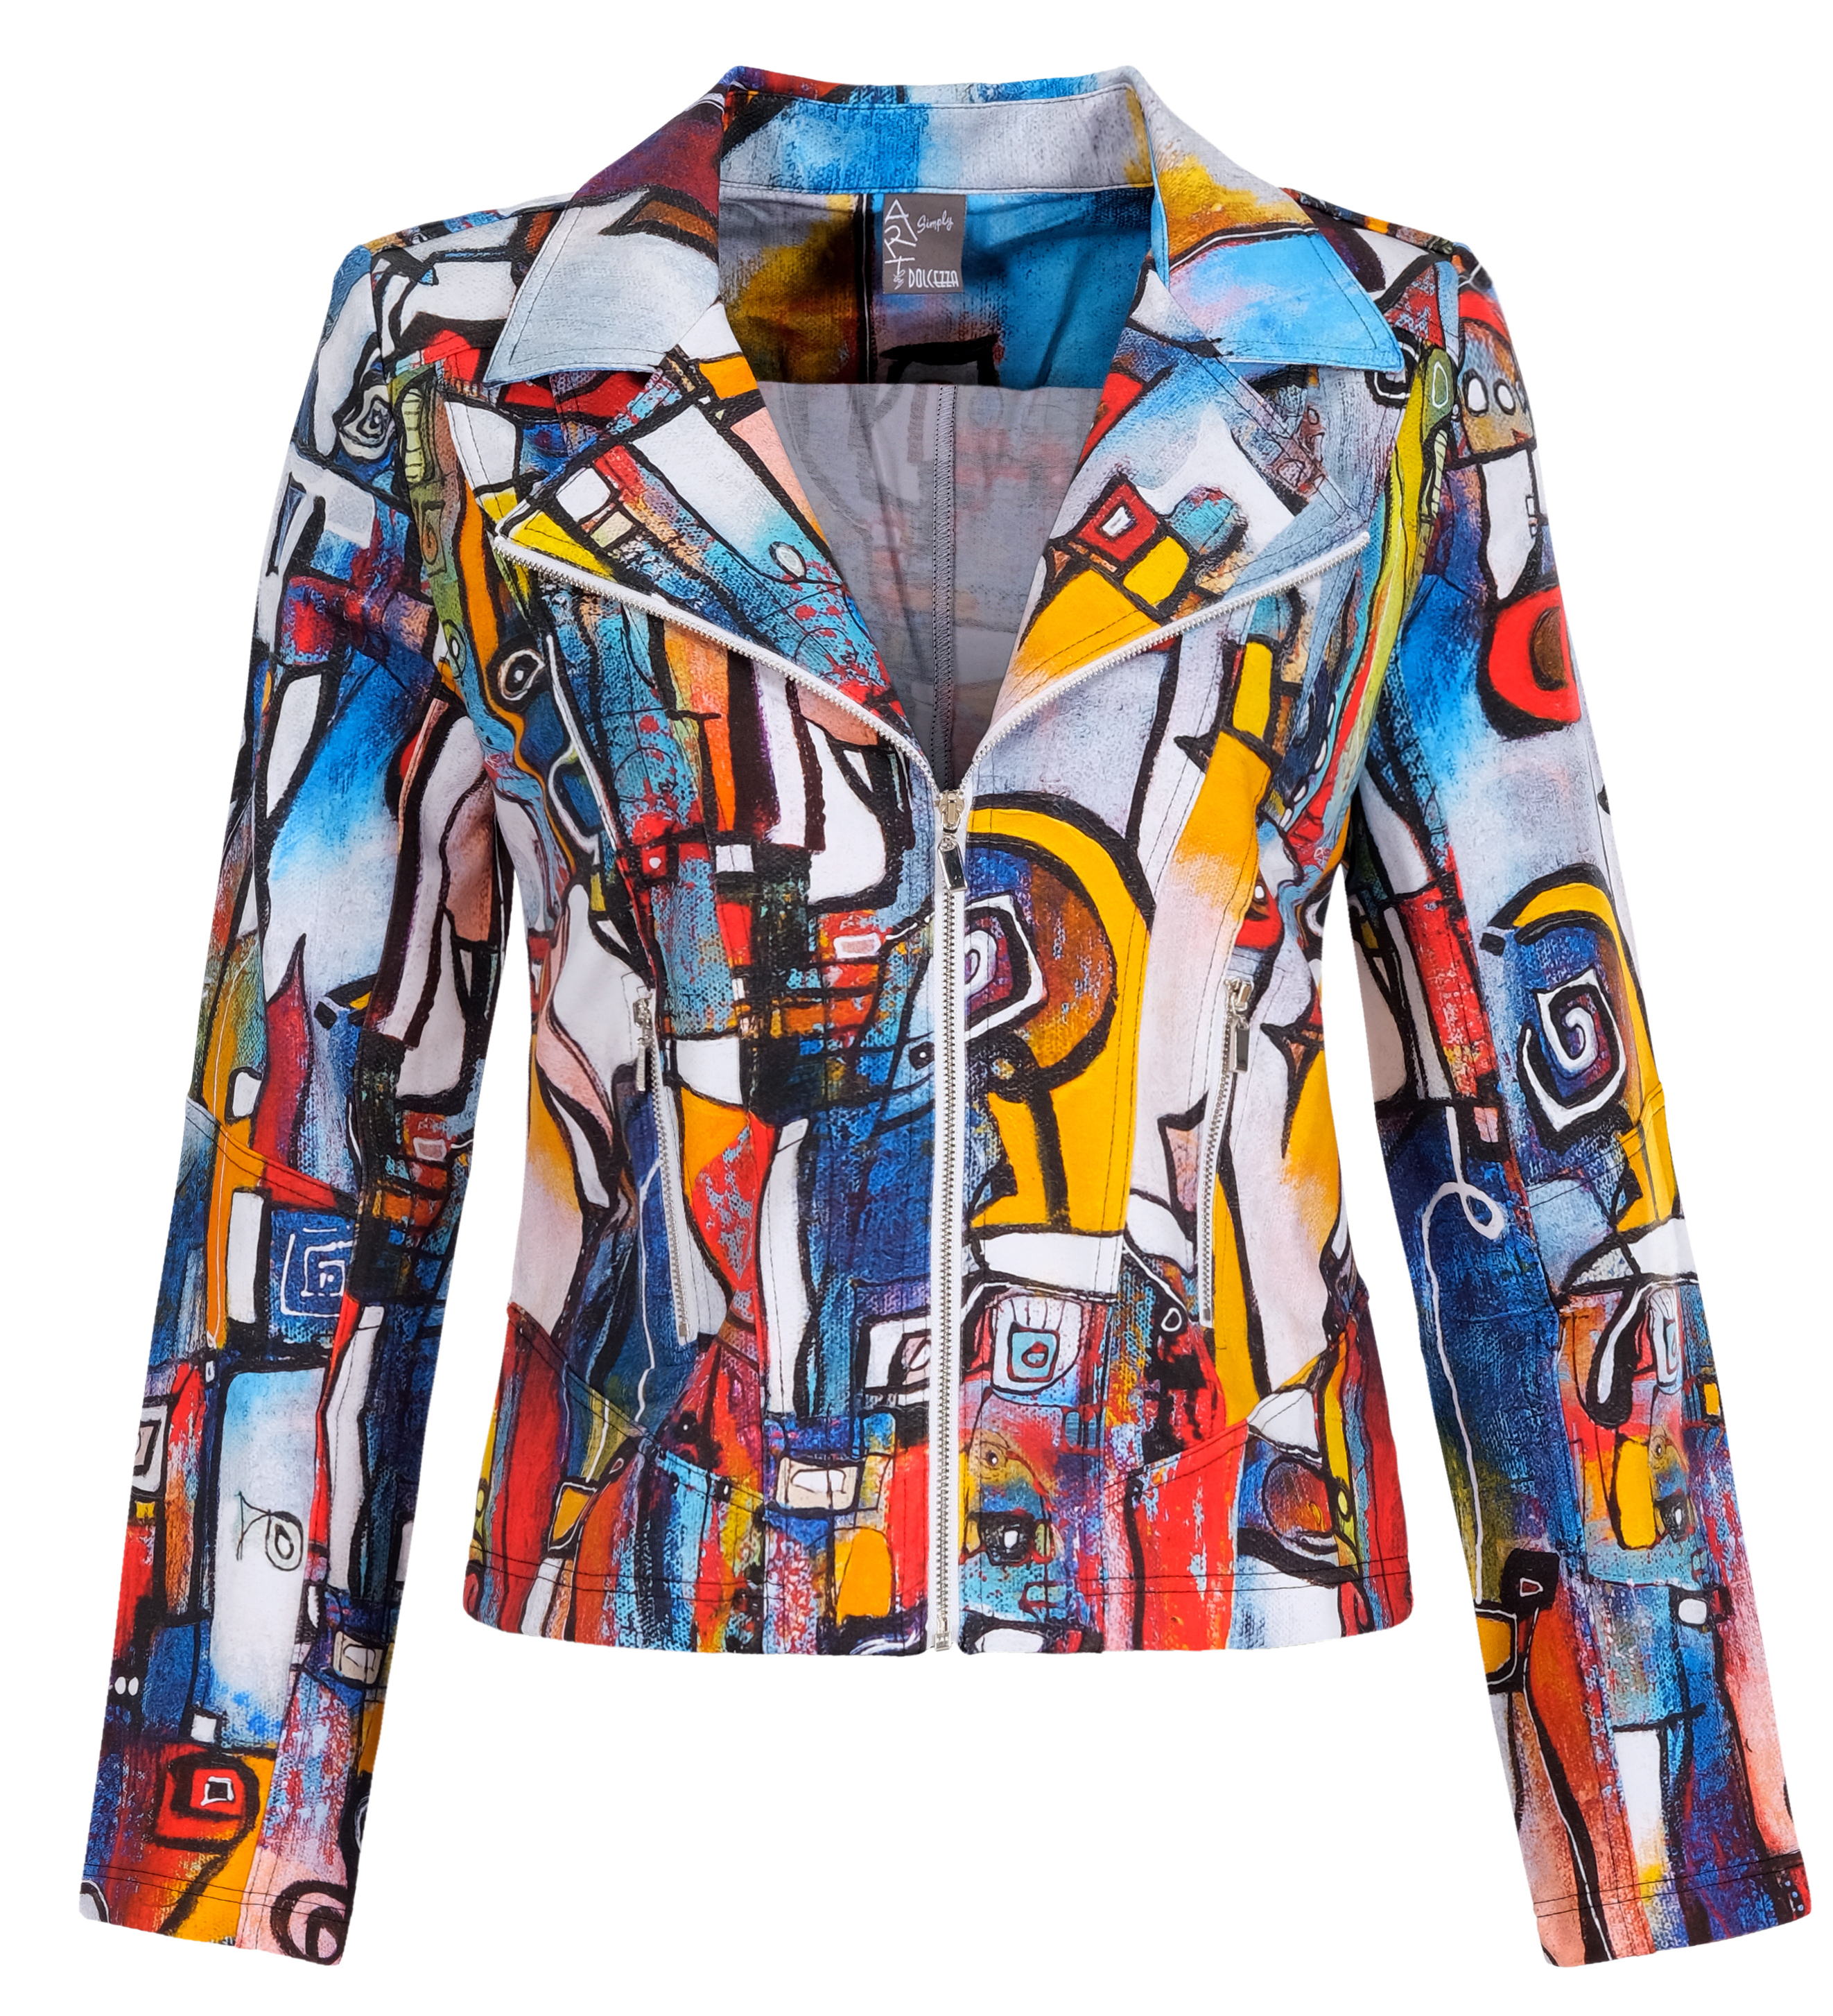 Simply Art Dolcezza: It's Complicated Crazy Cool Abstract Art Soft Denim Zip Jacket (1 Left!) Dolcezza_SimplyArt_21717